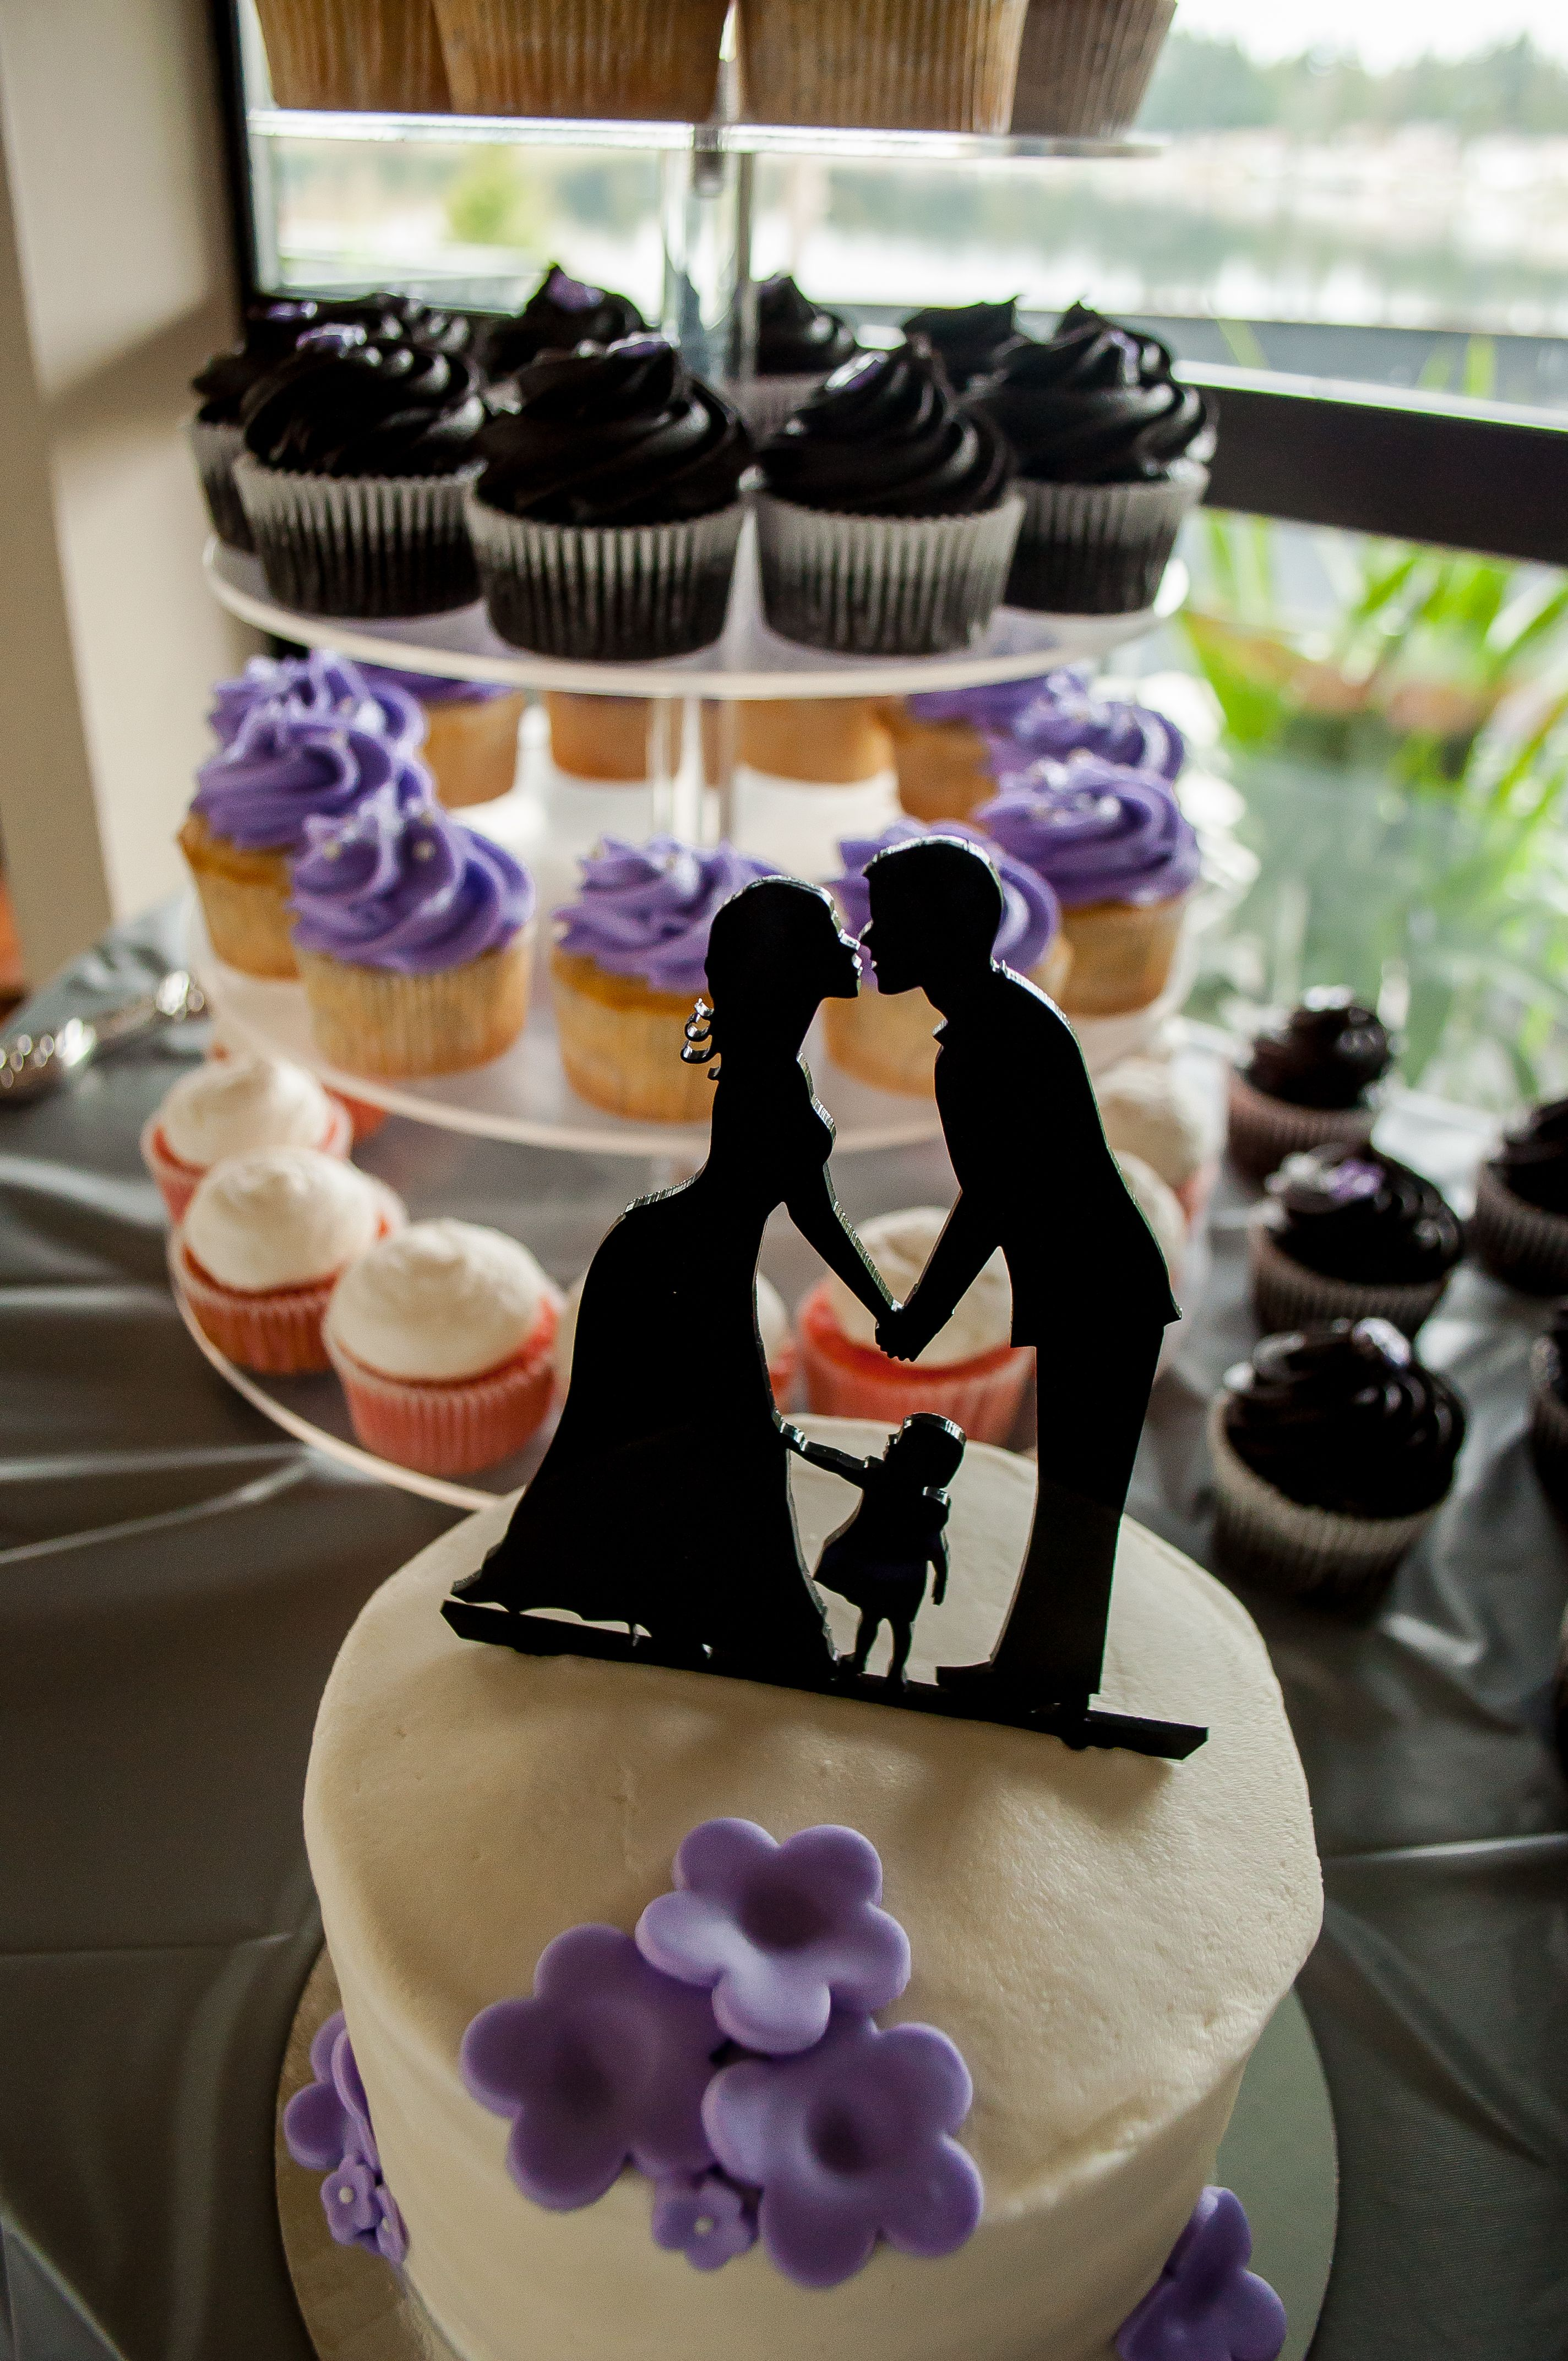 LOVE that this cake topper includes the couple AND their child